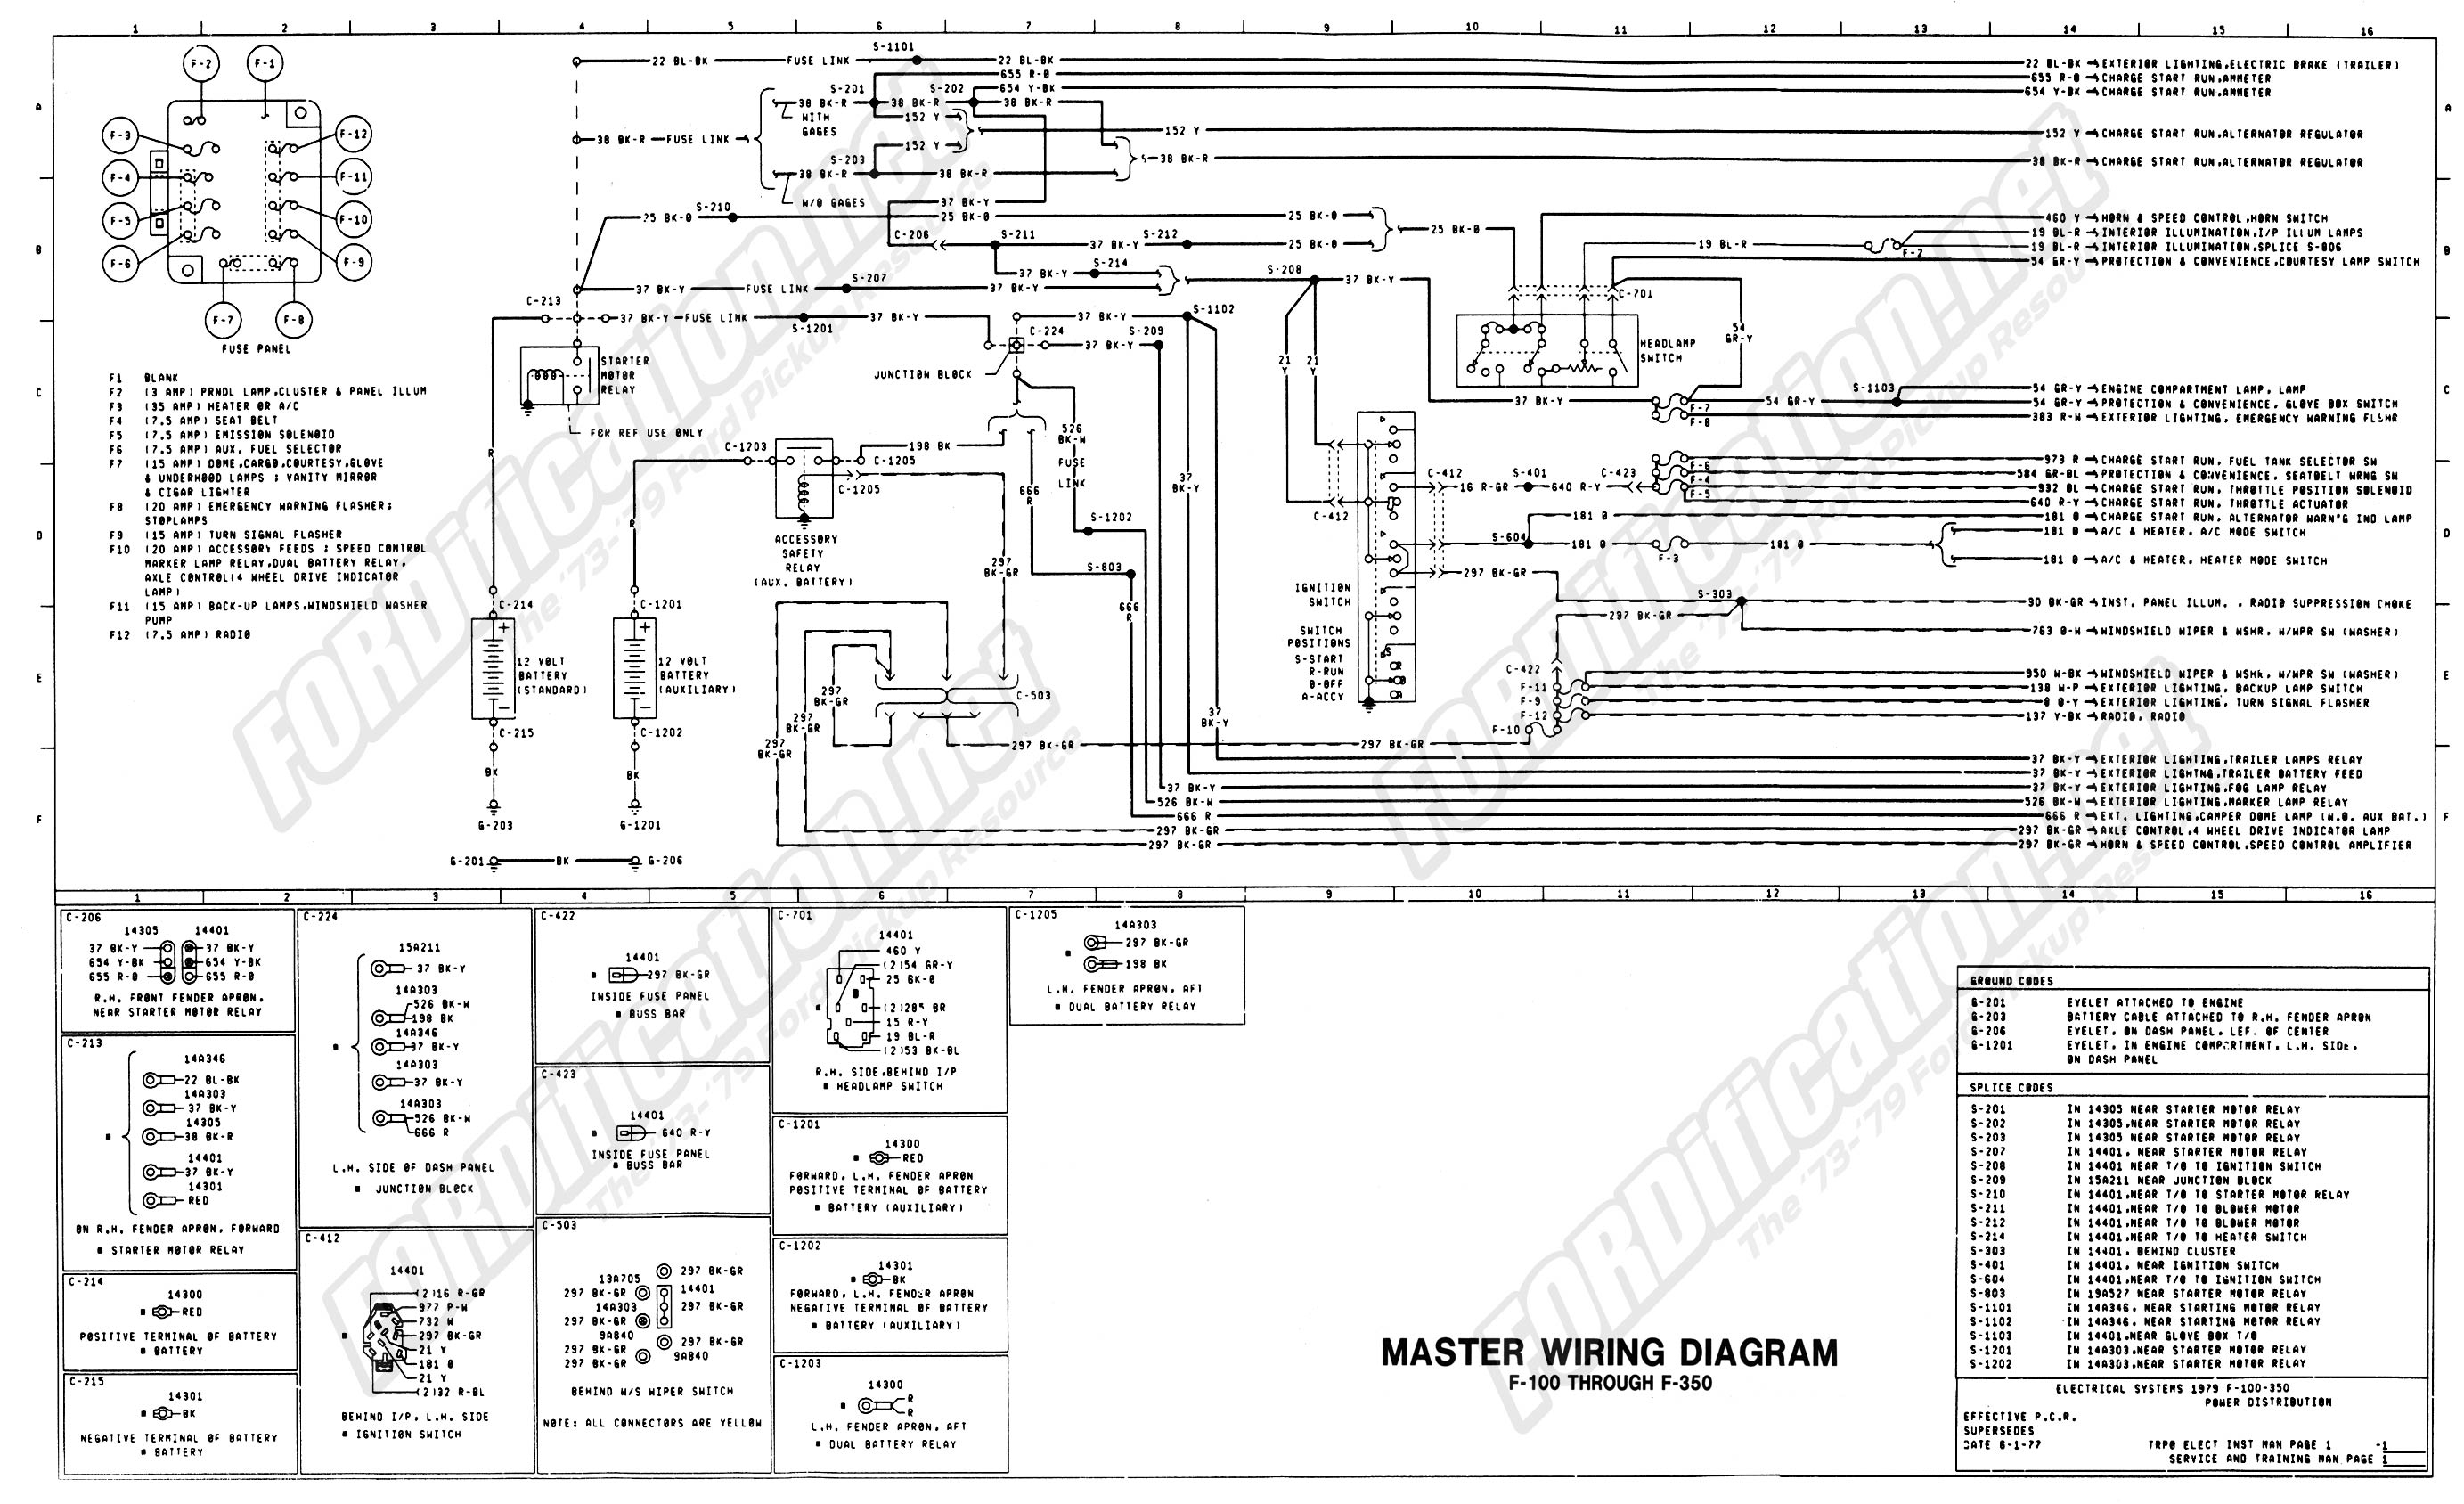 1988 ford f150 radio wiring diagram download-wiring 79master 1of9 15-b